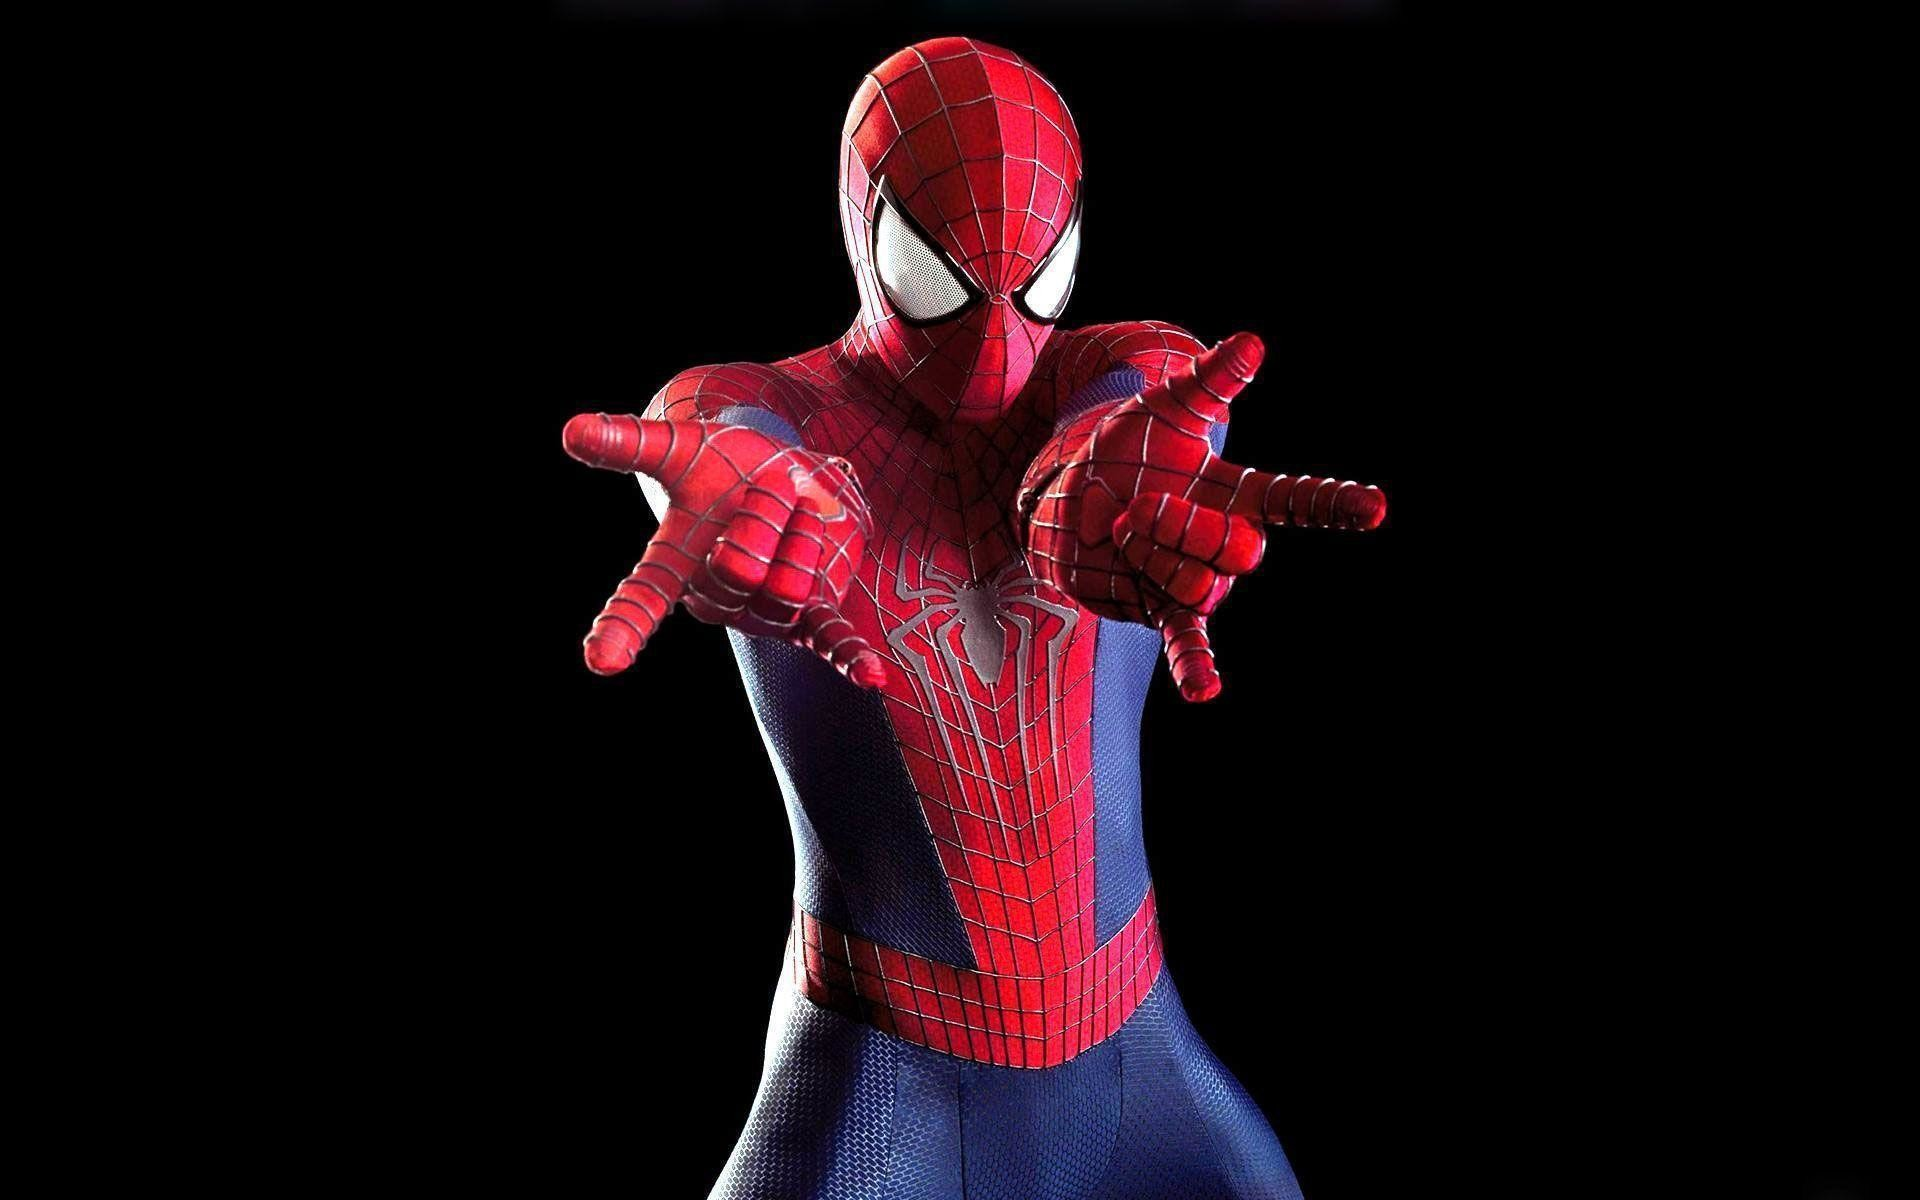 Spiderman Wallpaper Iphone 5 Posted By Christopher Tremblay